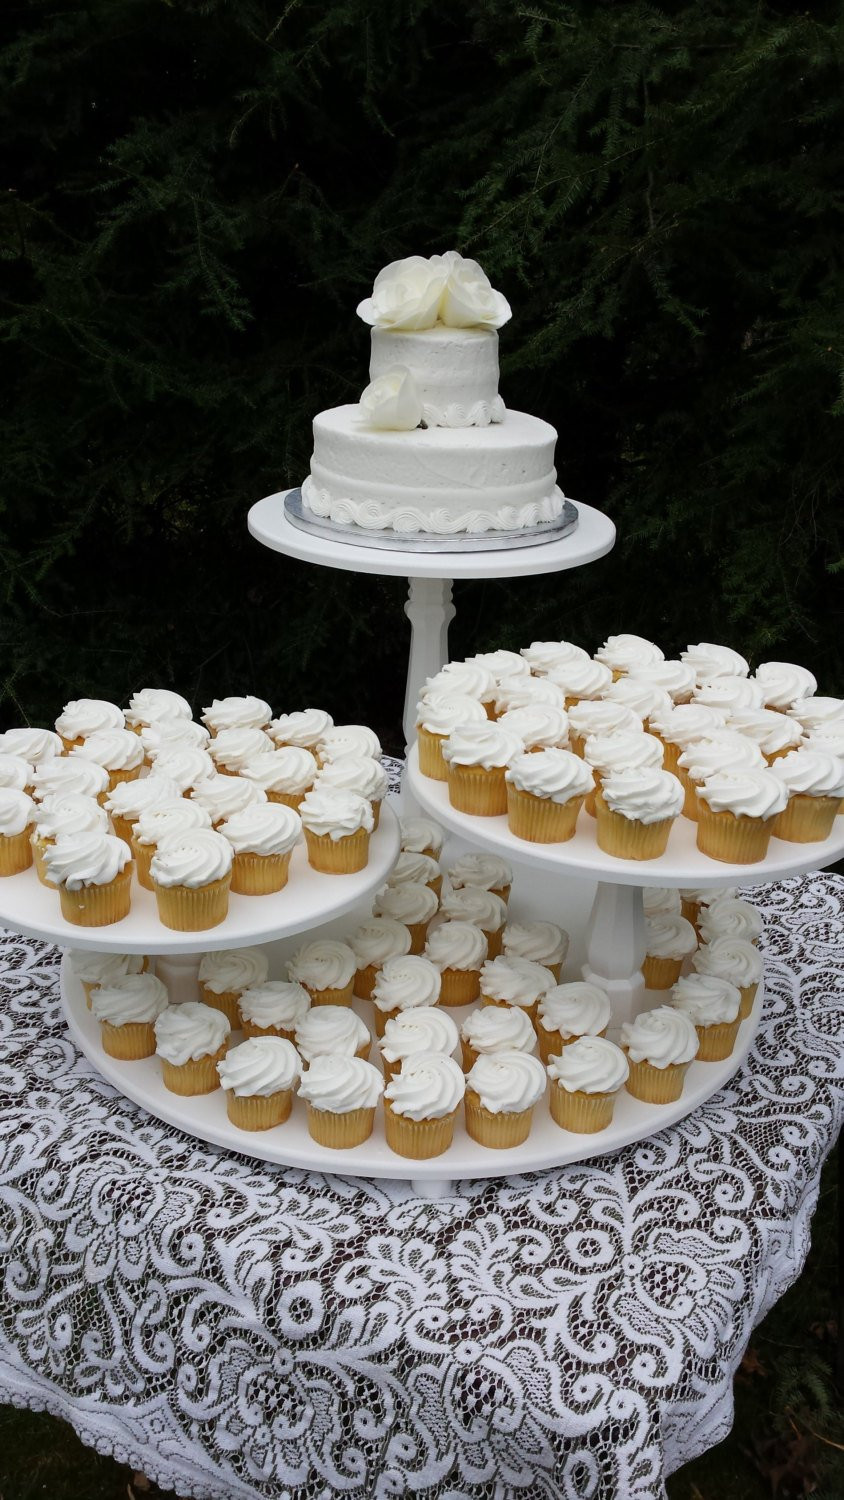 Wedding Cake Stands For Cupcakes  Cupcake Stand Cake Stand Wedding Cake Stand Wedding Cupcake